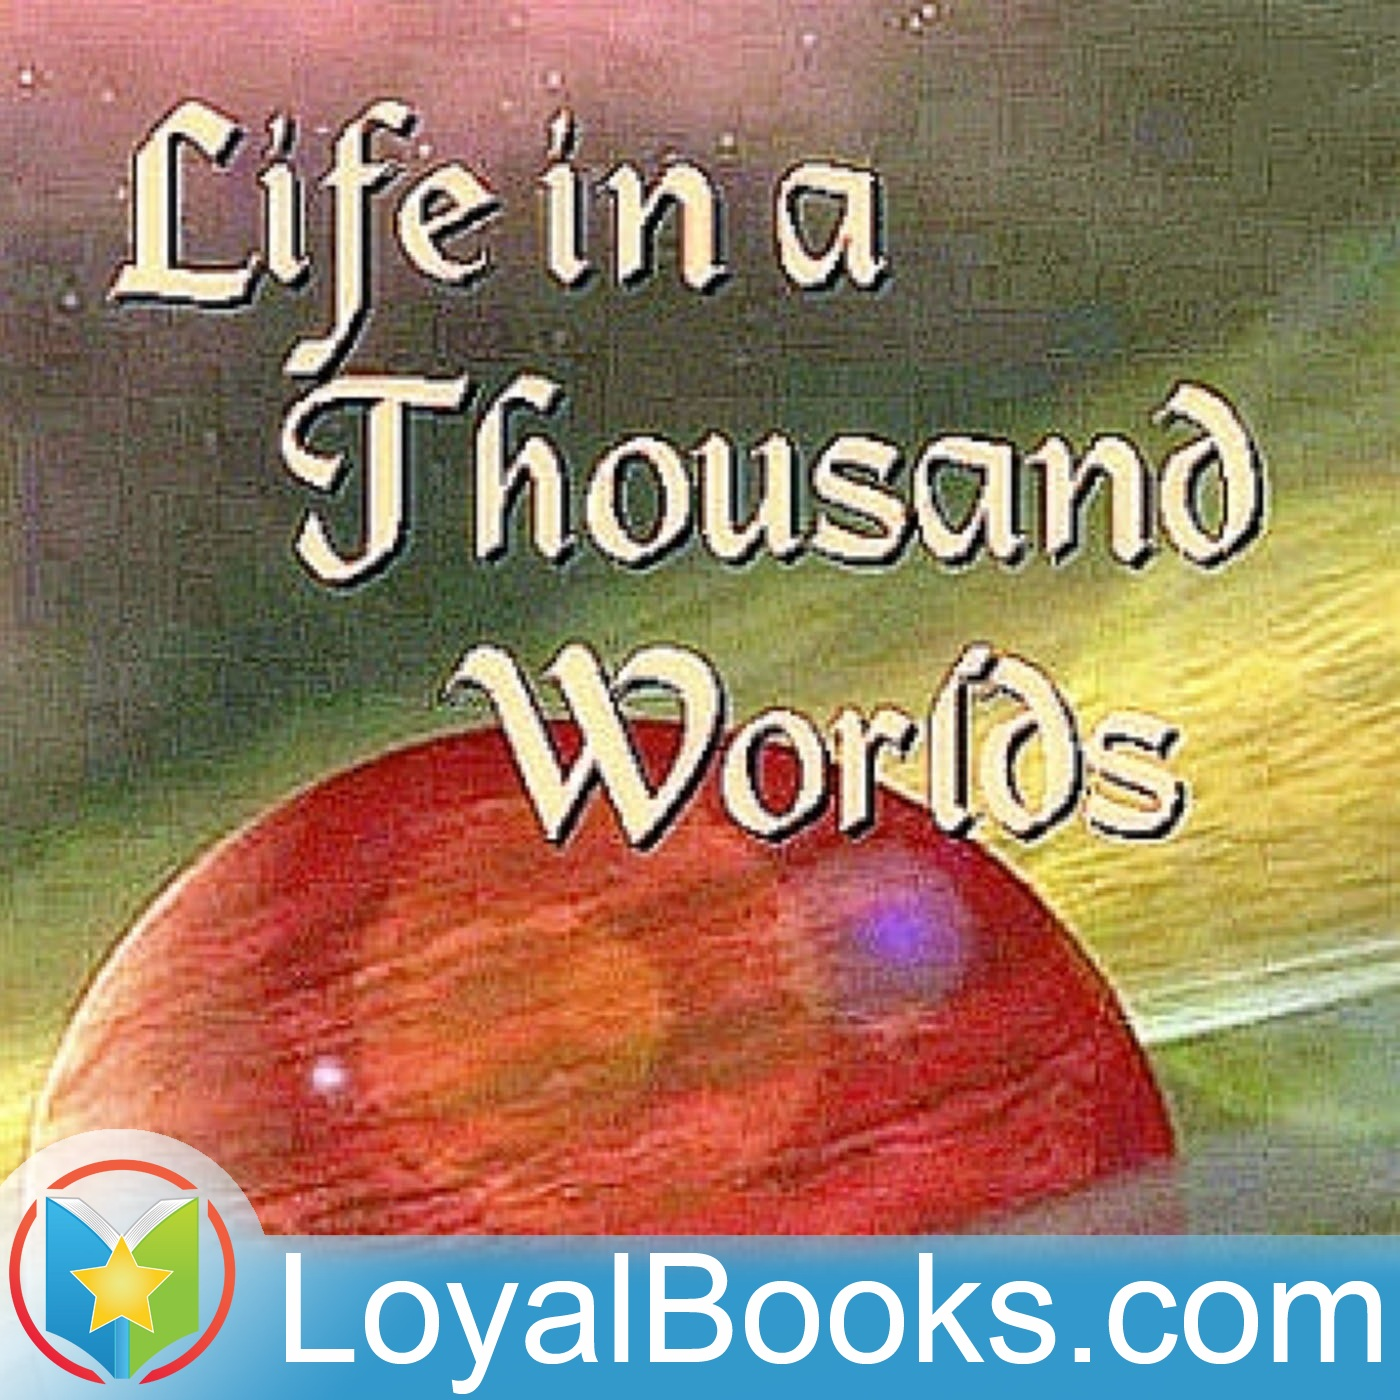 <![CDATA[Life in a Thousand Worlds by William Shuler Harris]]>